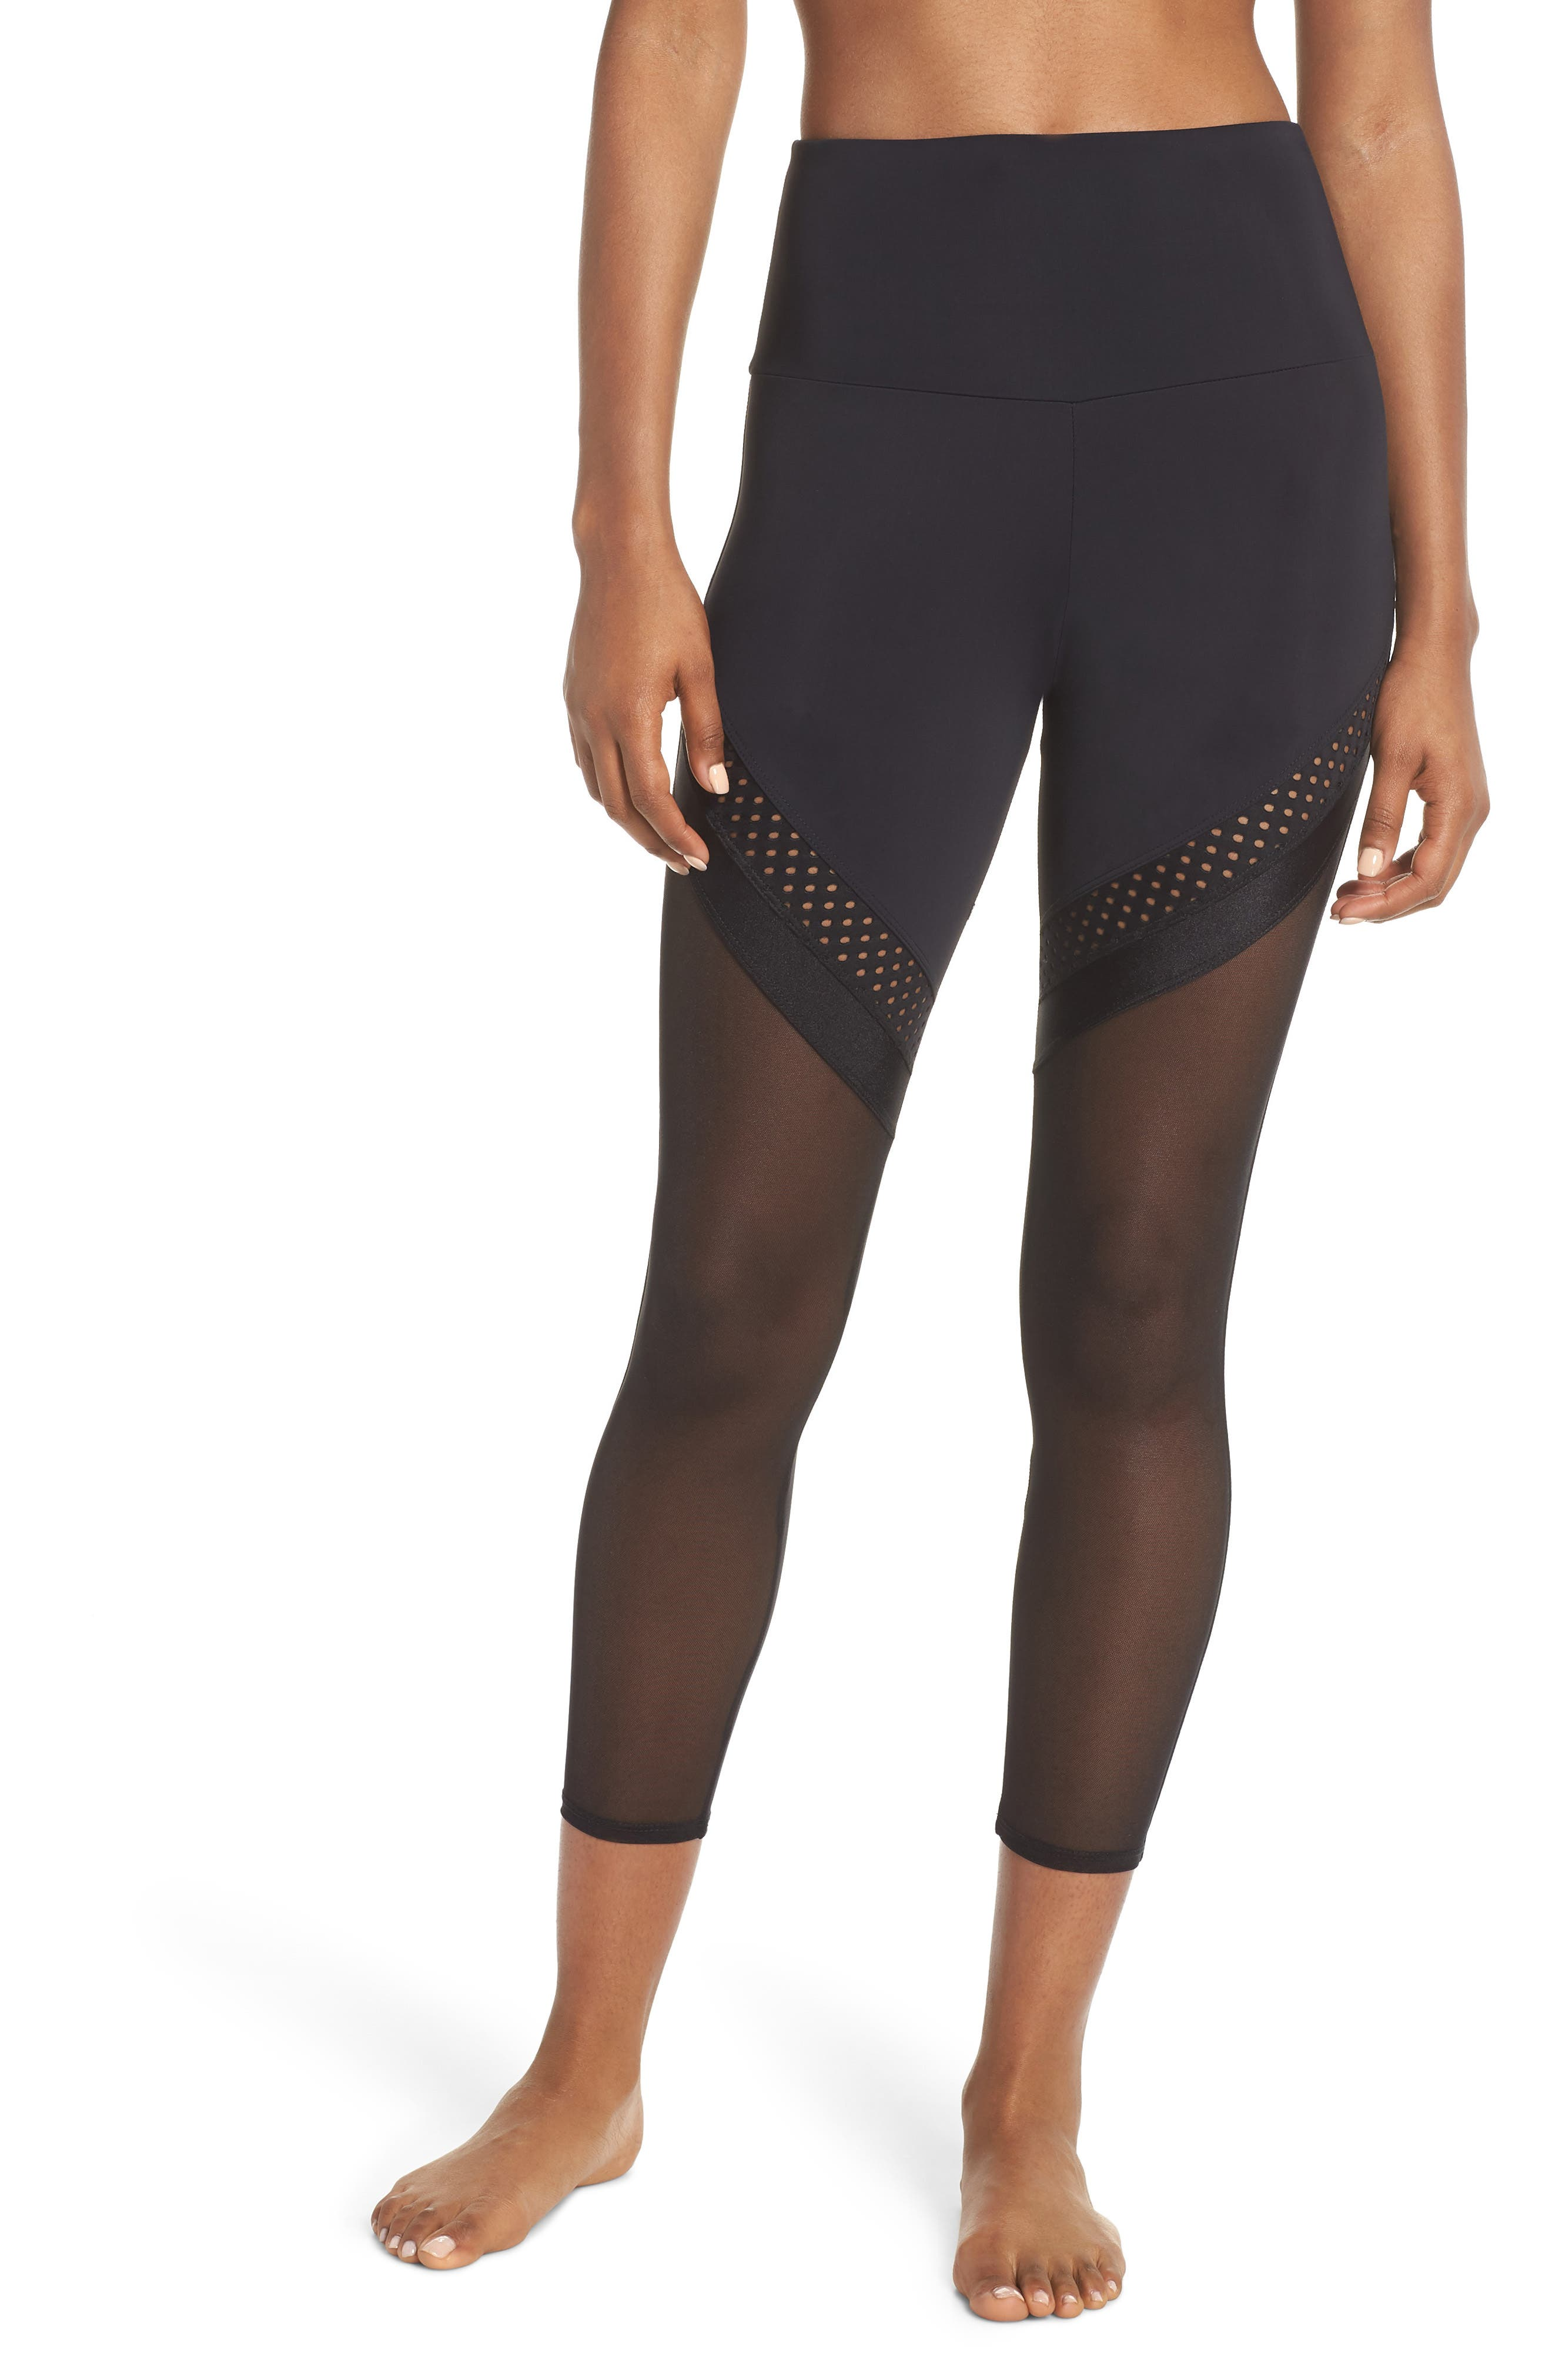 Chrome Leggings,                             Main thumbnail 1, color,                             Black